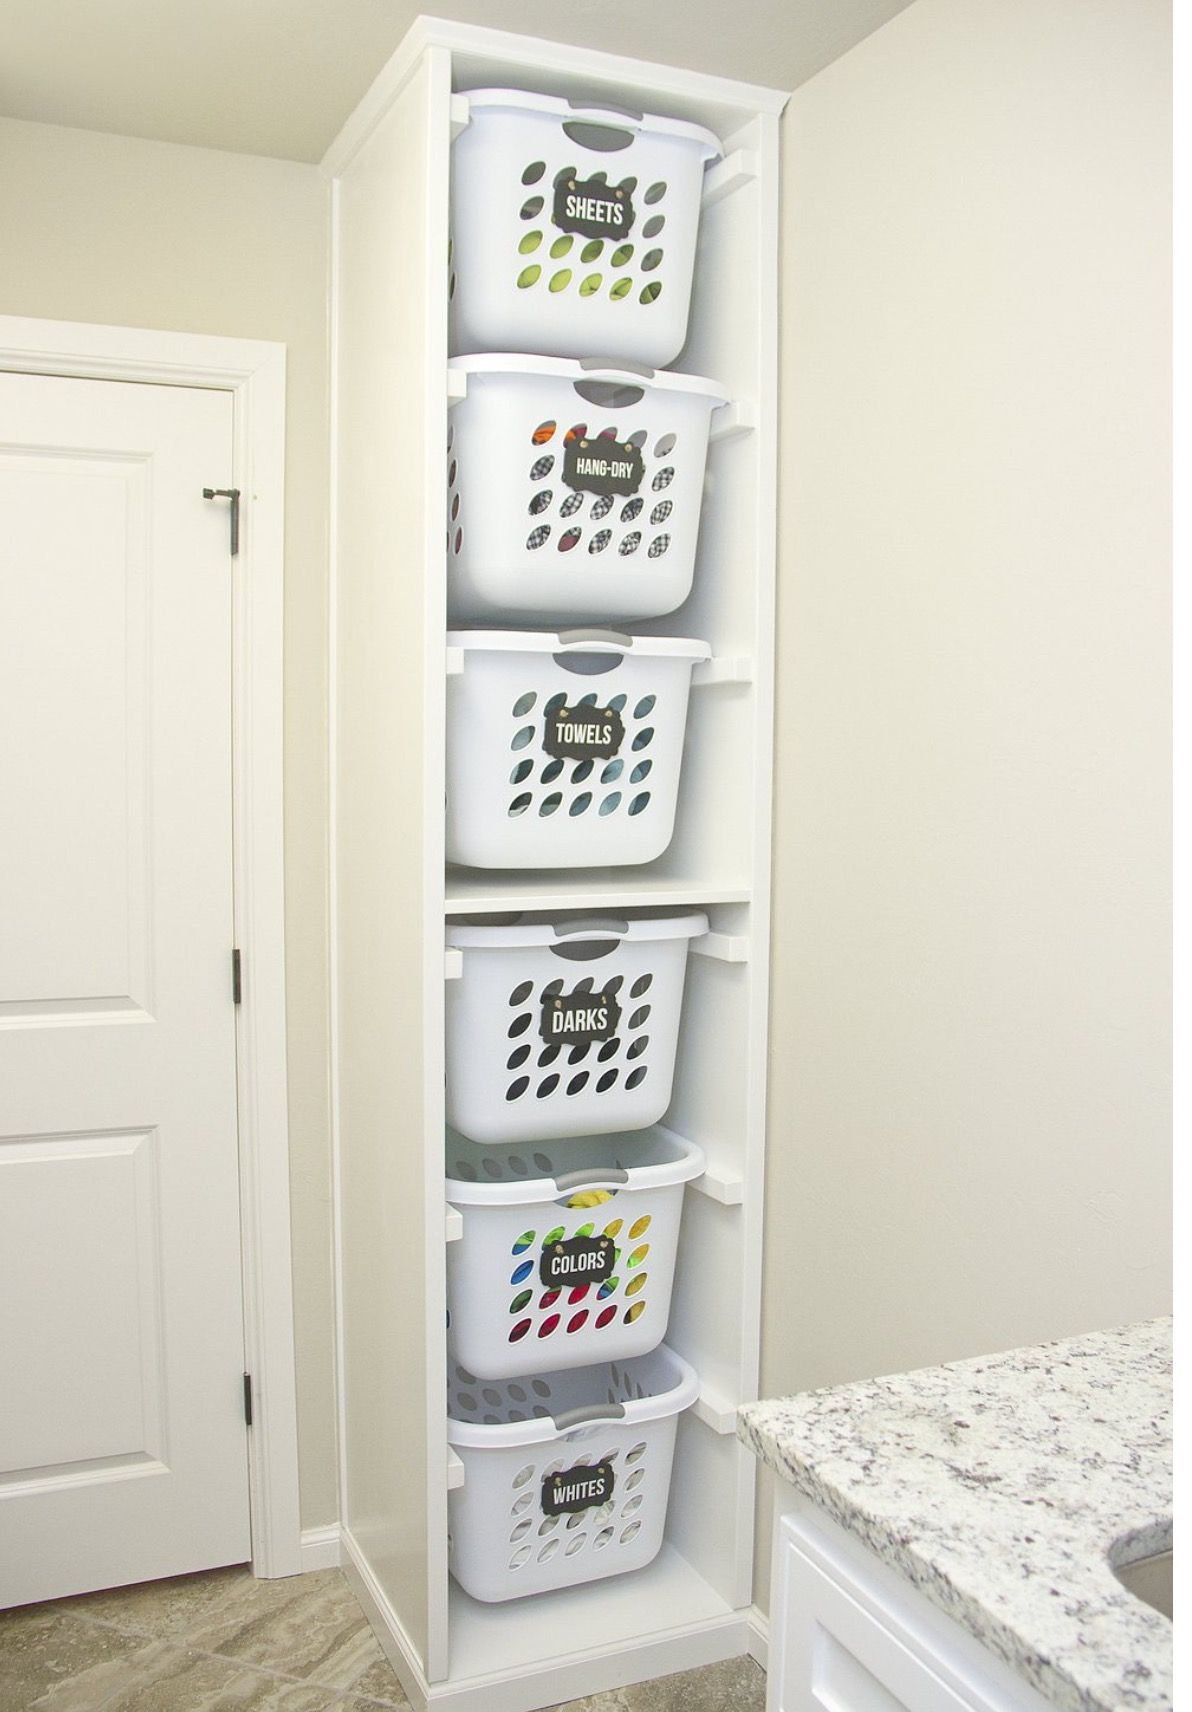 kids toy closet organizer. Perfect To Organize Garage/garden Stuff And For Laundry Room Storage In Closet Hold Tubs So You Can Take Out One Without Moving Them All DIY Kids Toy Organizer